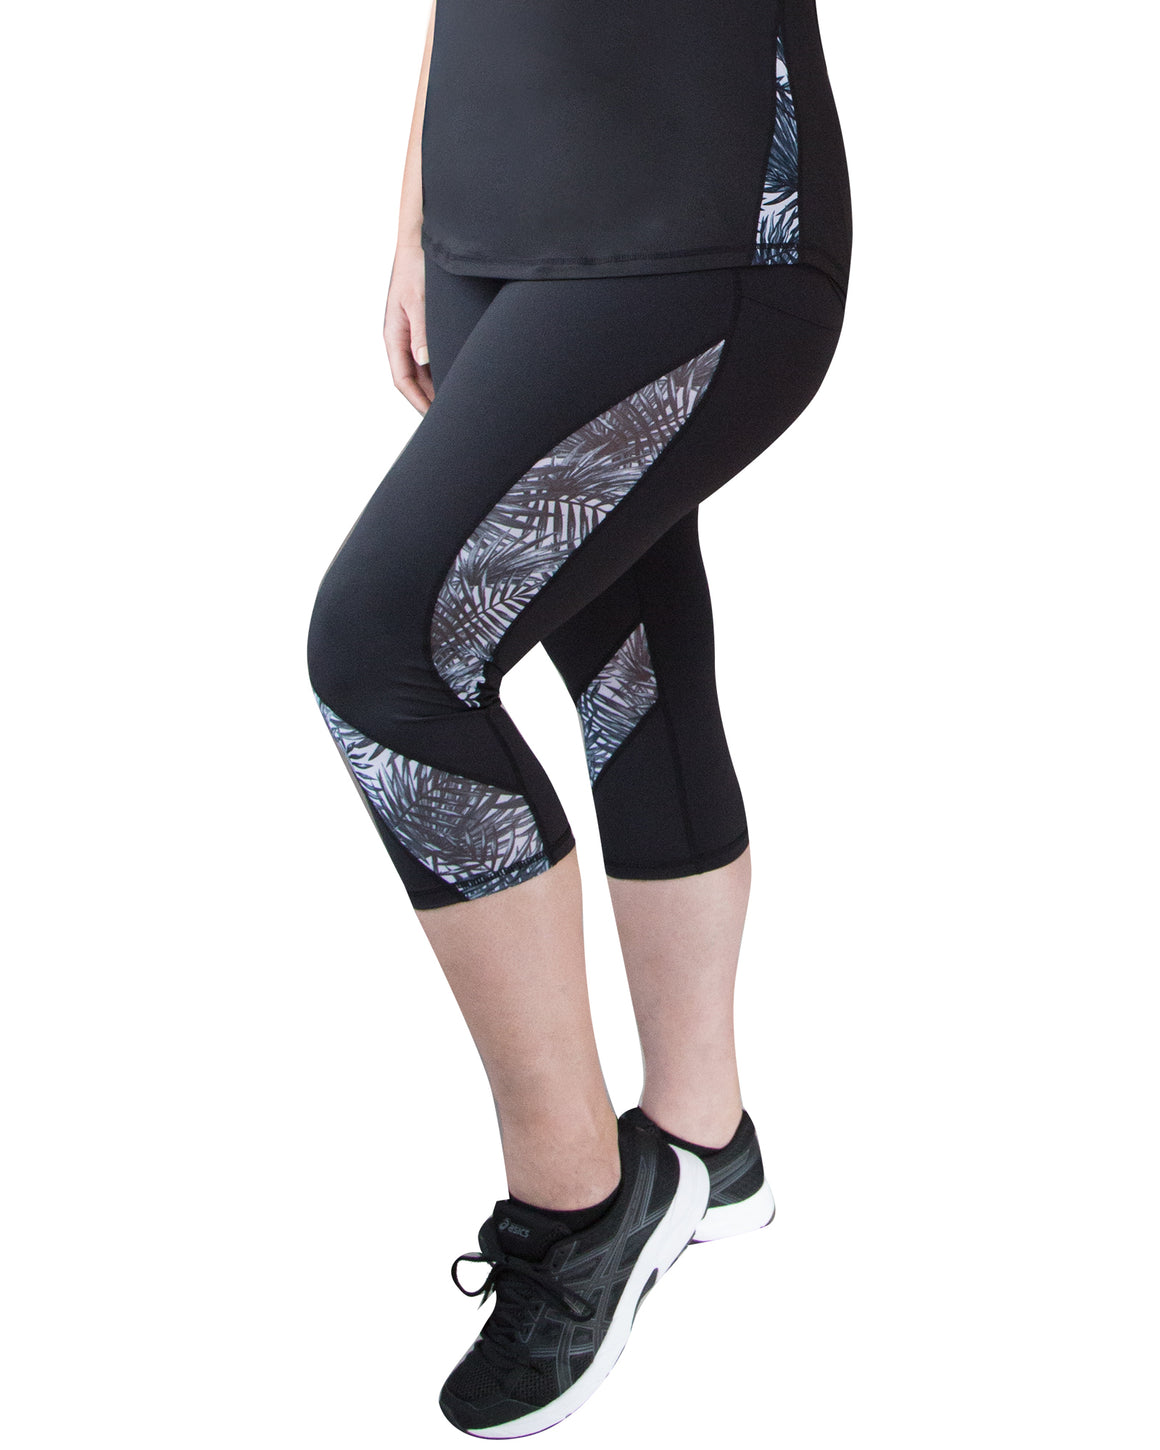 Plus Size Mesh Sculpt Tights with animal print | Curvy Chic Sports